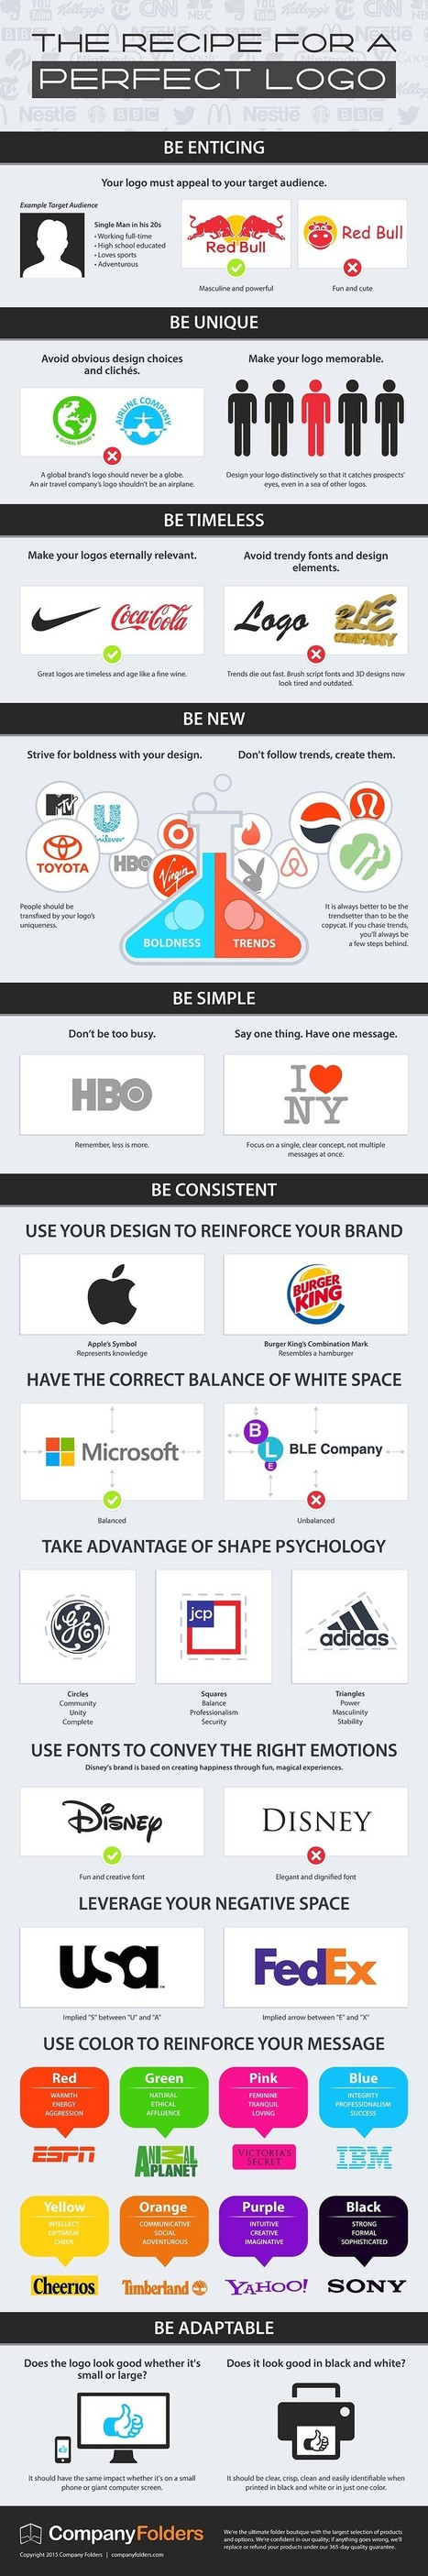 Why designing an Impressive Business Logo is important? | All Infographics | Scoop.it